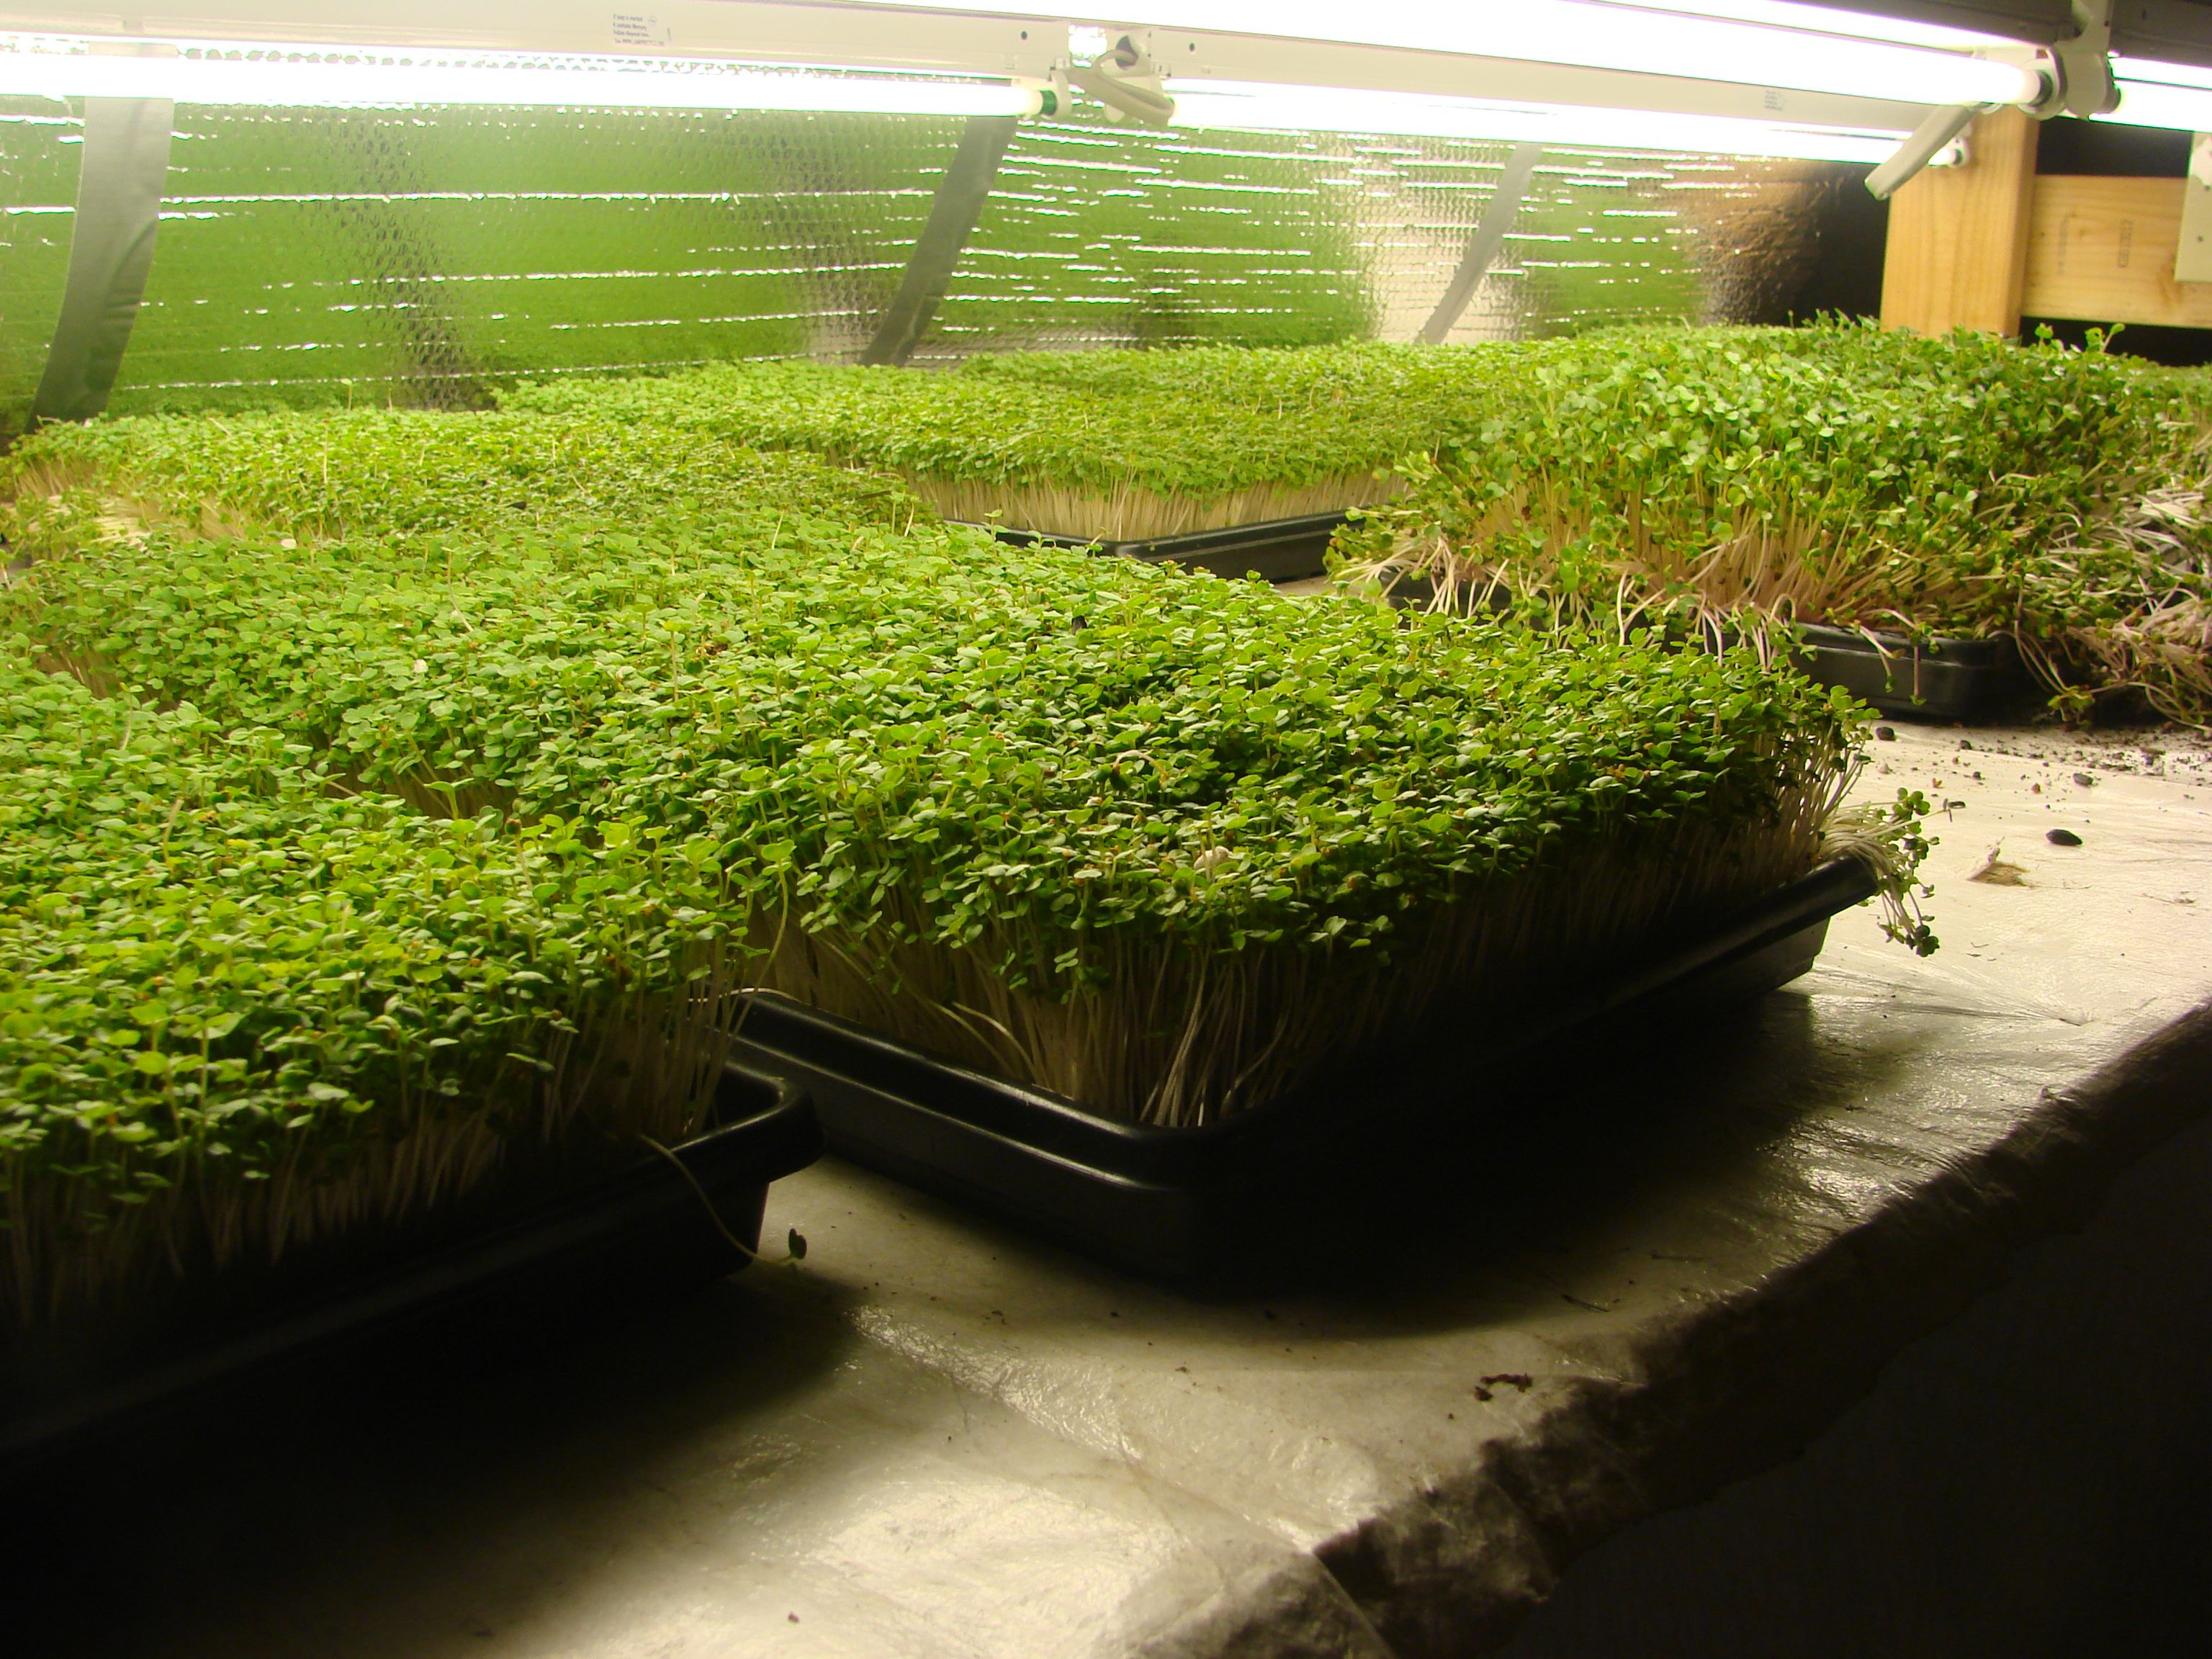 Growing and Selling Microgreens: An Example of an Urban